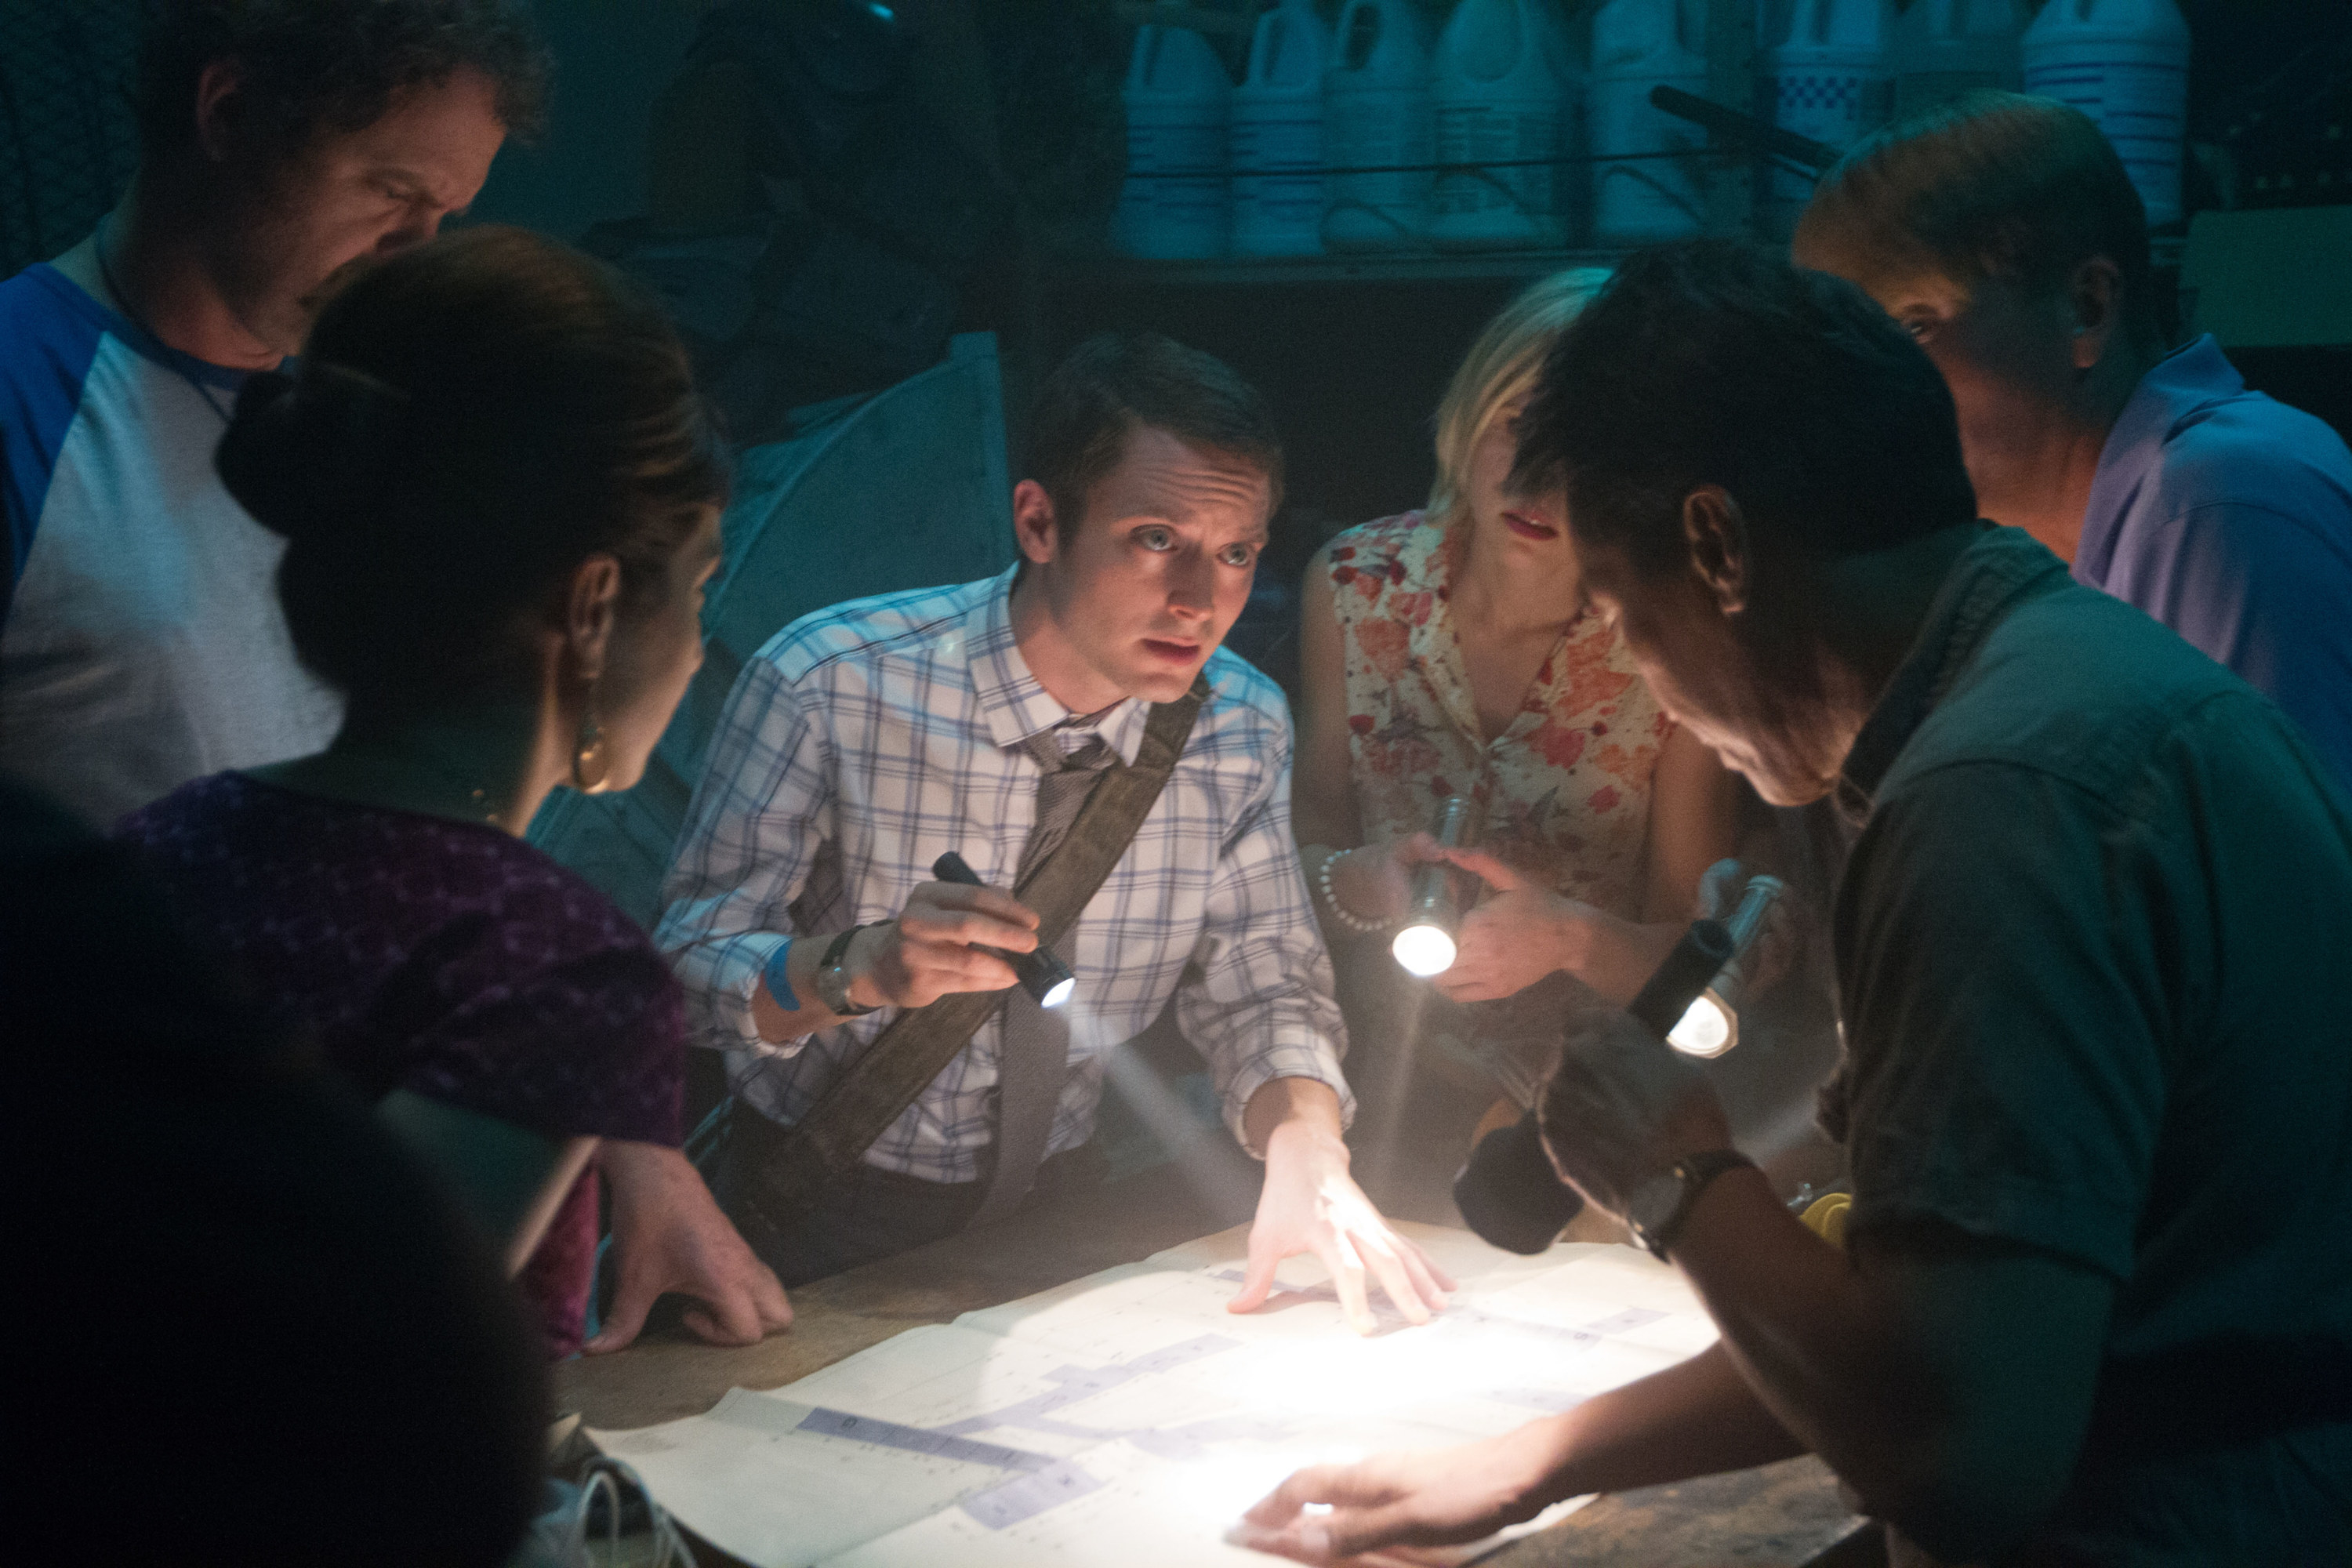 Elijah Wood looking at a large document on a table surrounded by people with flashlights